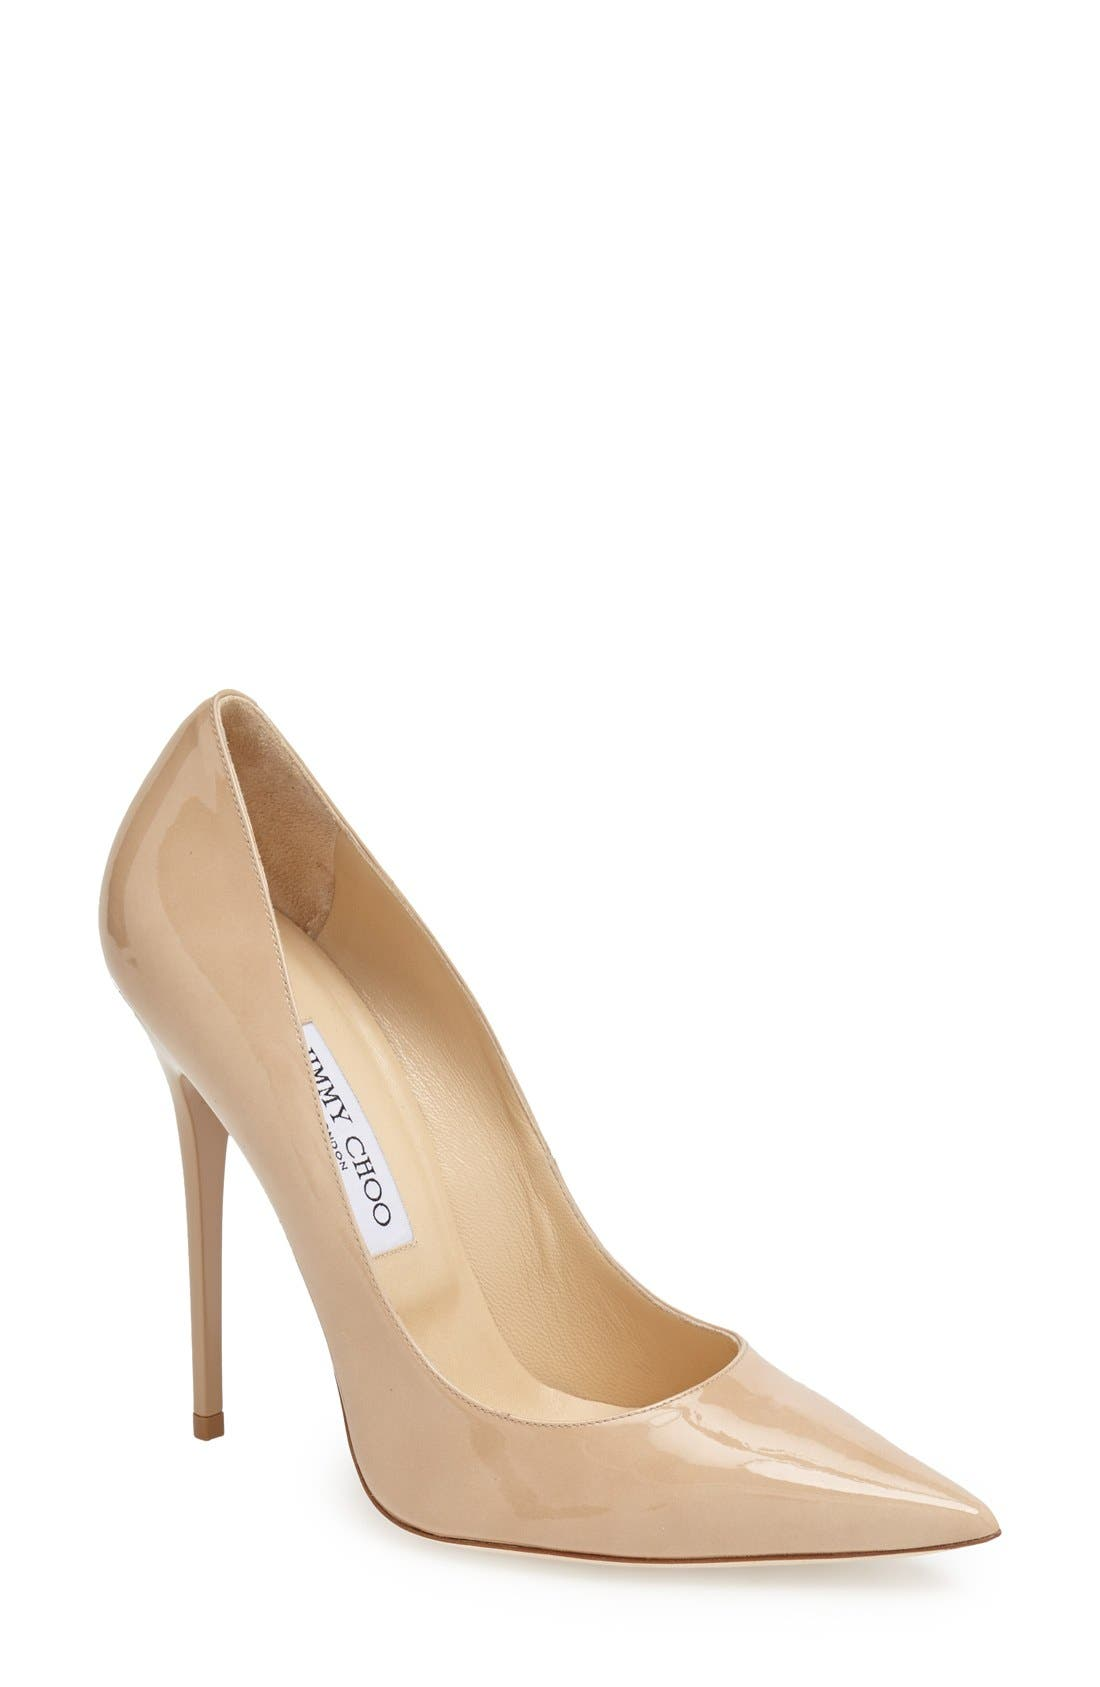 Main Image - Jimmy Choo 'Anouk' Pump